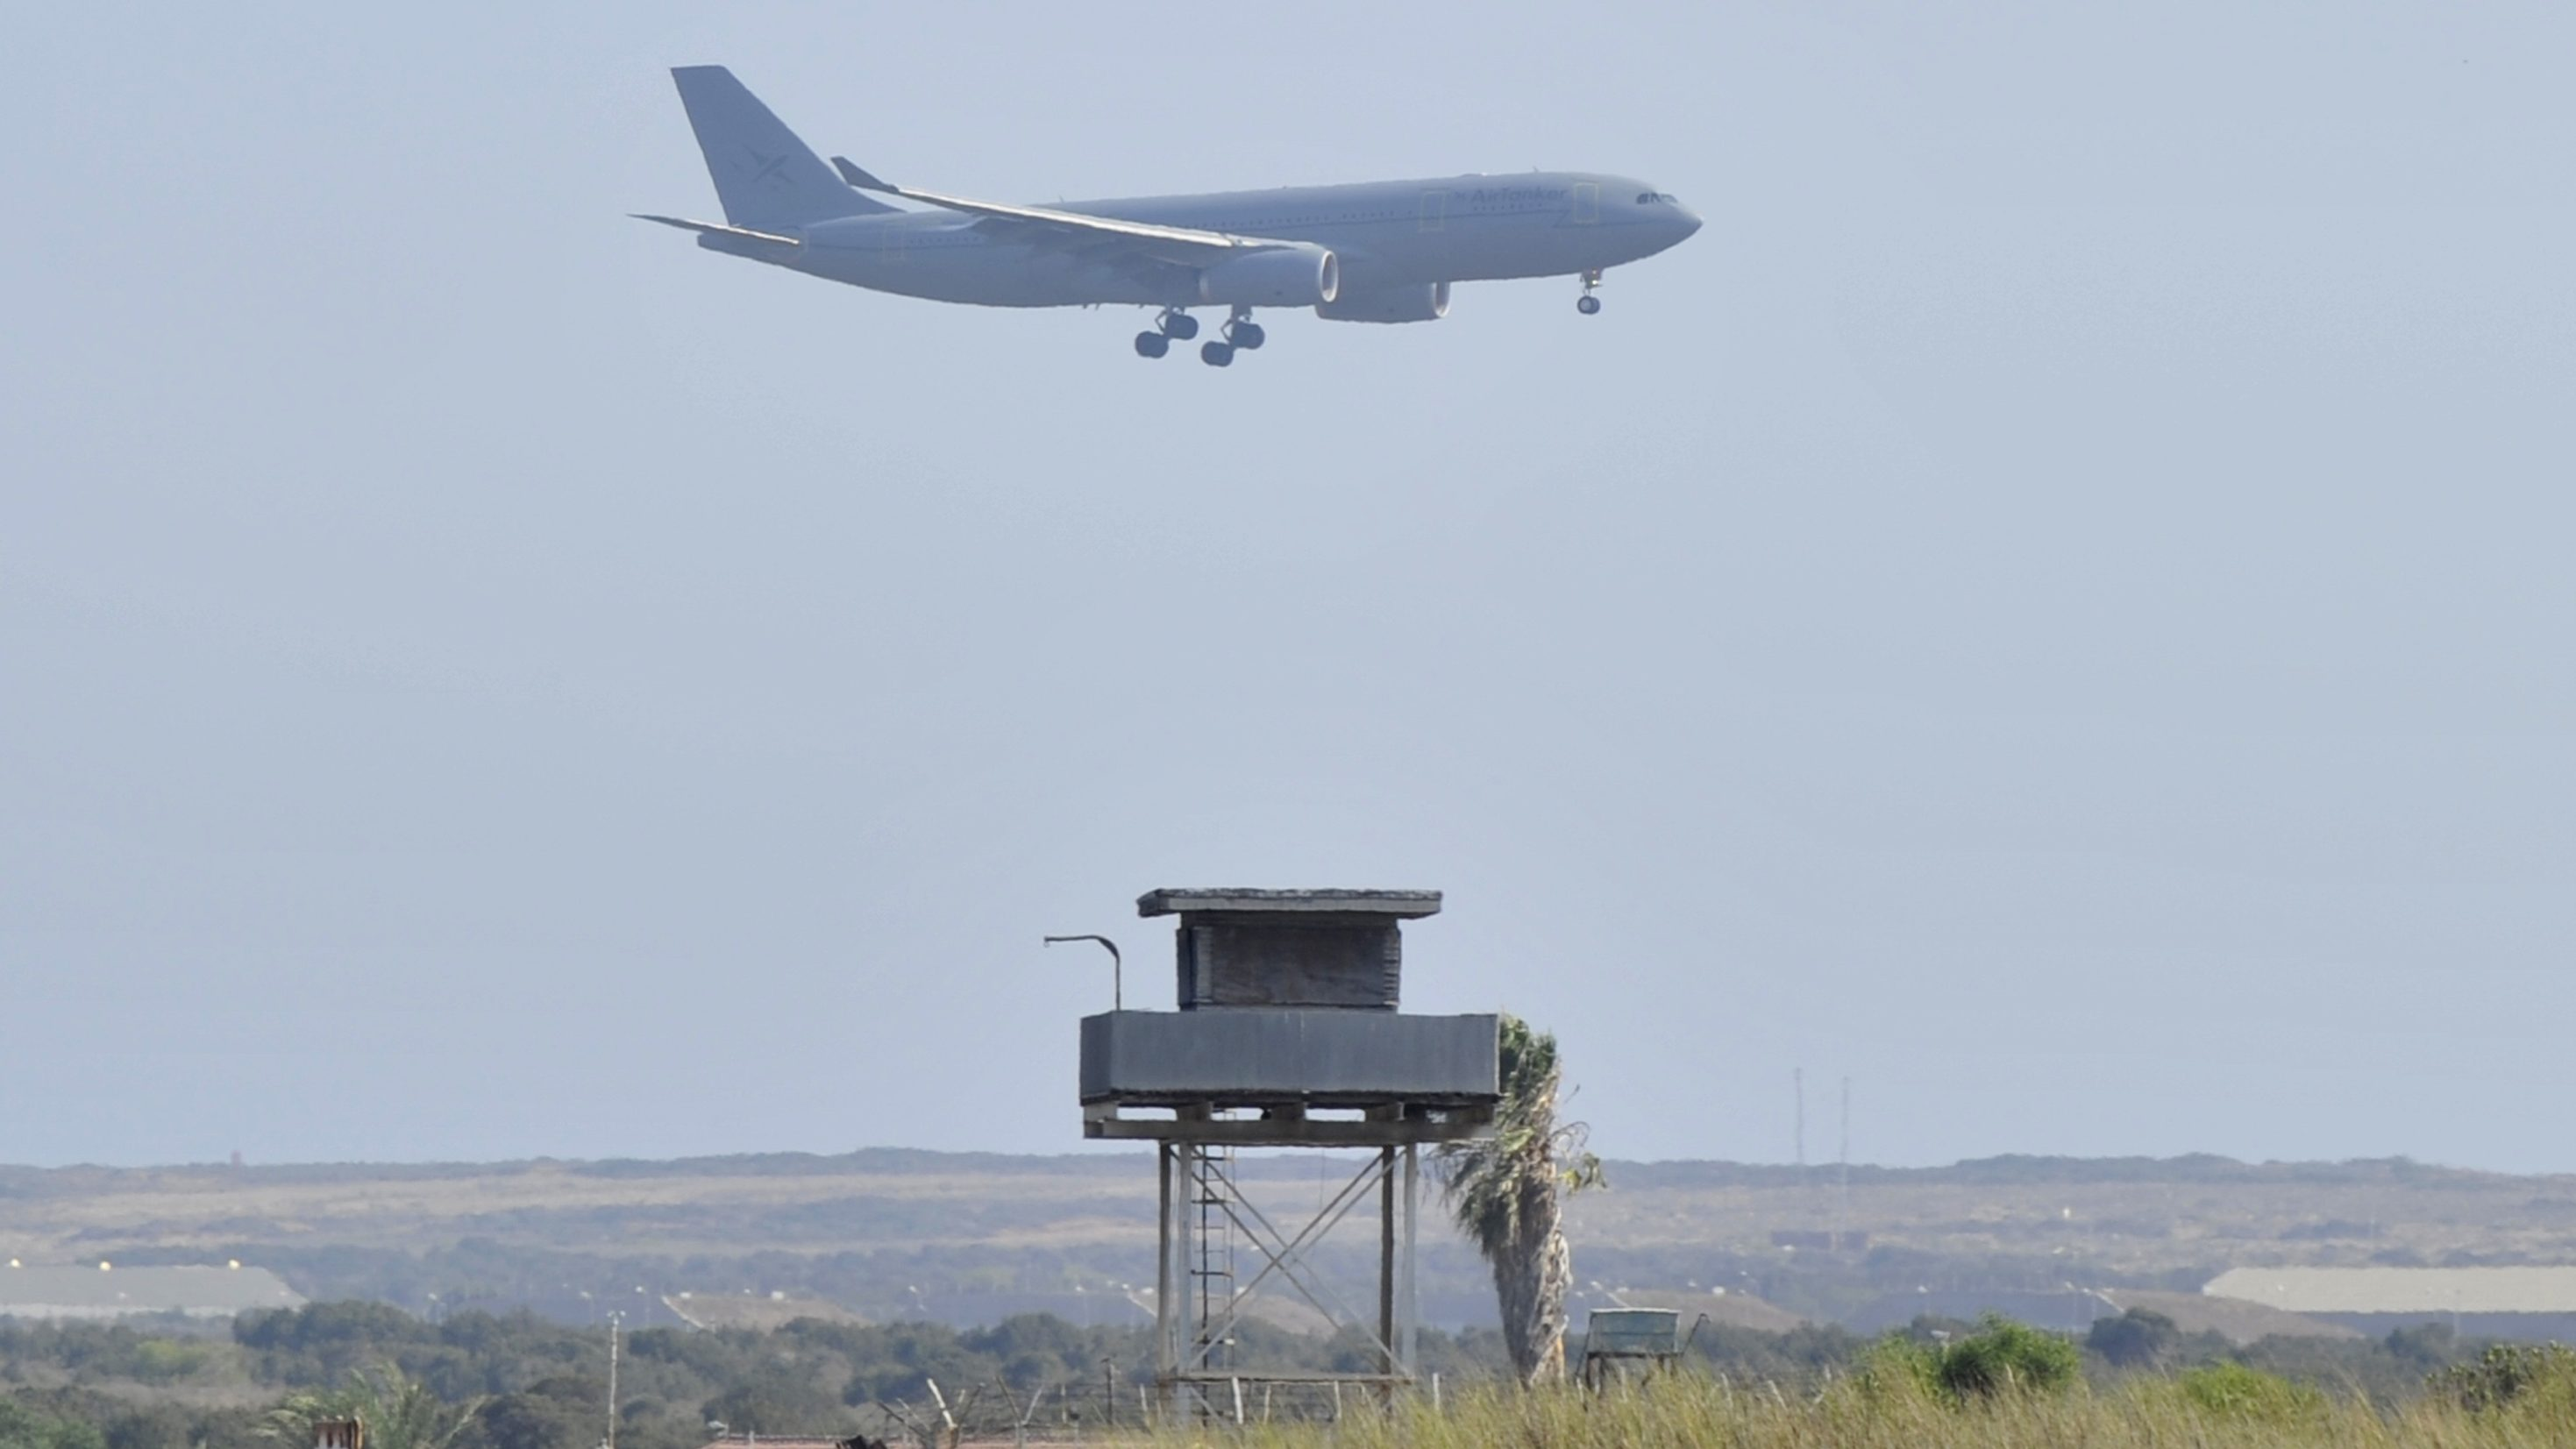 An AirTanker Airbus Voyager aircraft prepares to land at a British base at Akrotiri, near the city of Limassol, in Cyprus August 29 2013.